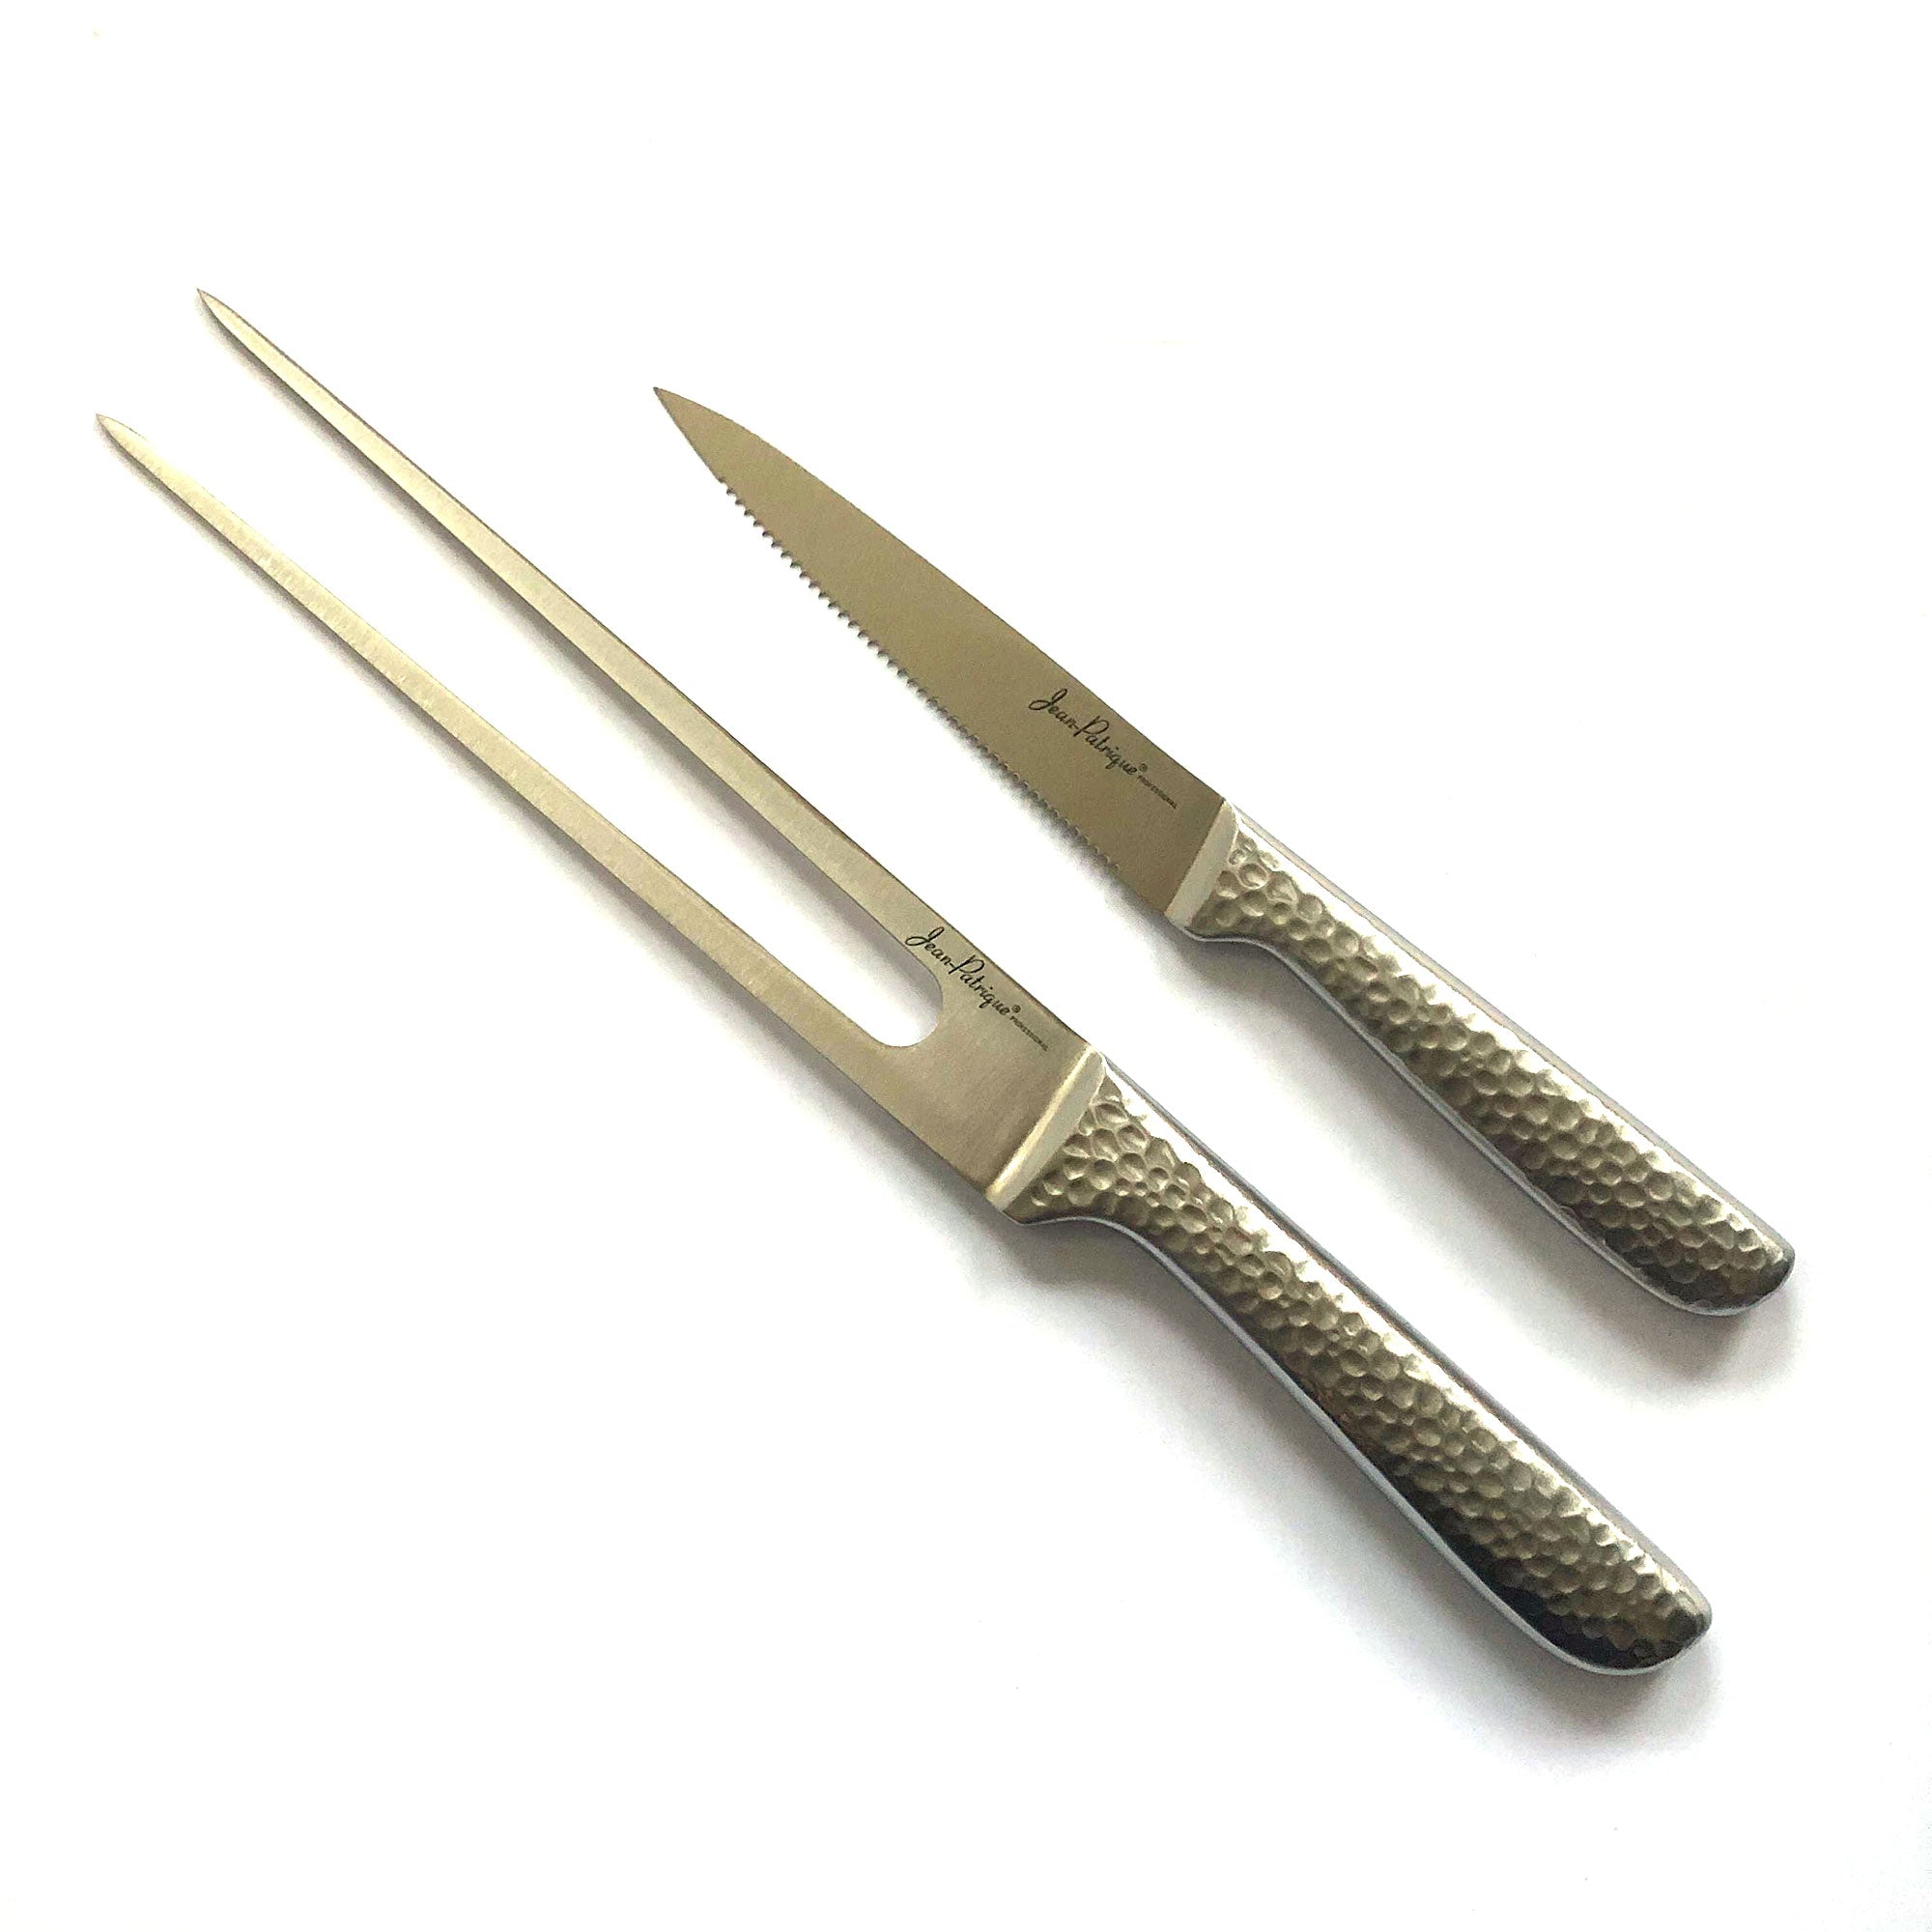 Serrated Carving Knife and Meat Fork Set